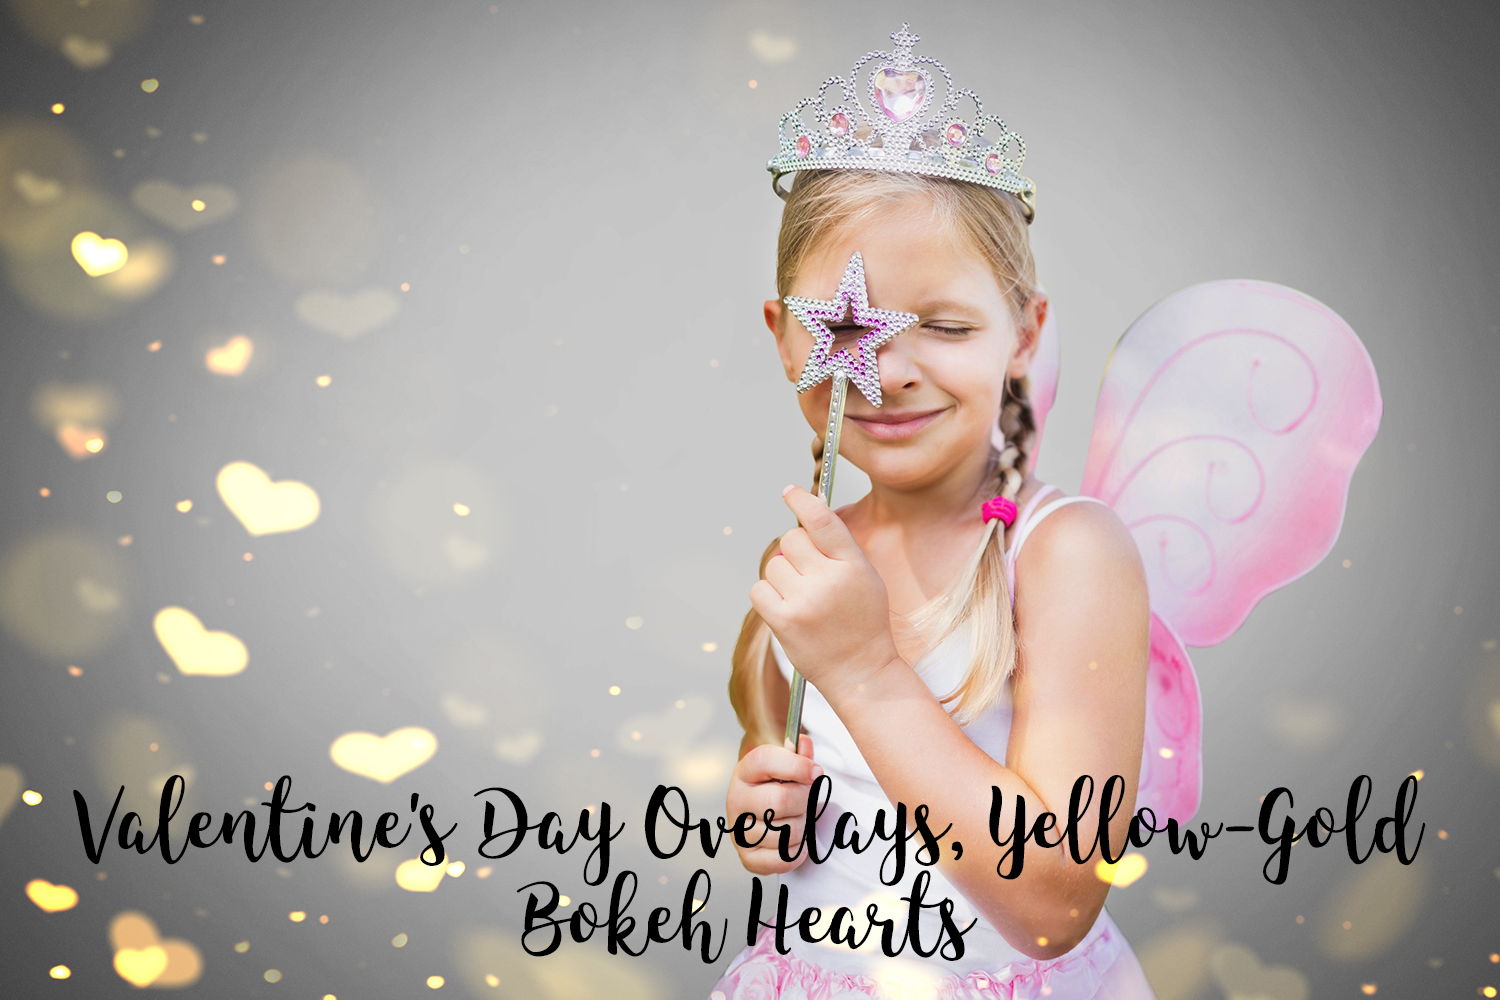 Valentine's Day Overlays, Yellow Gold Hearts Bokeh Overlays example image 9